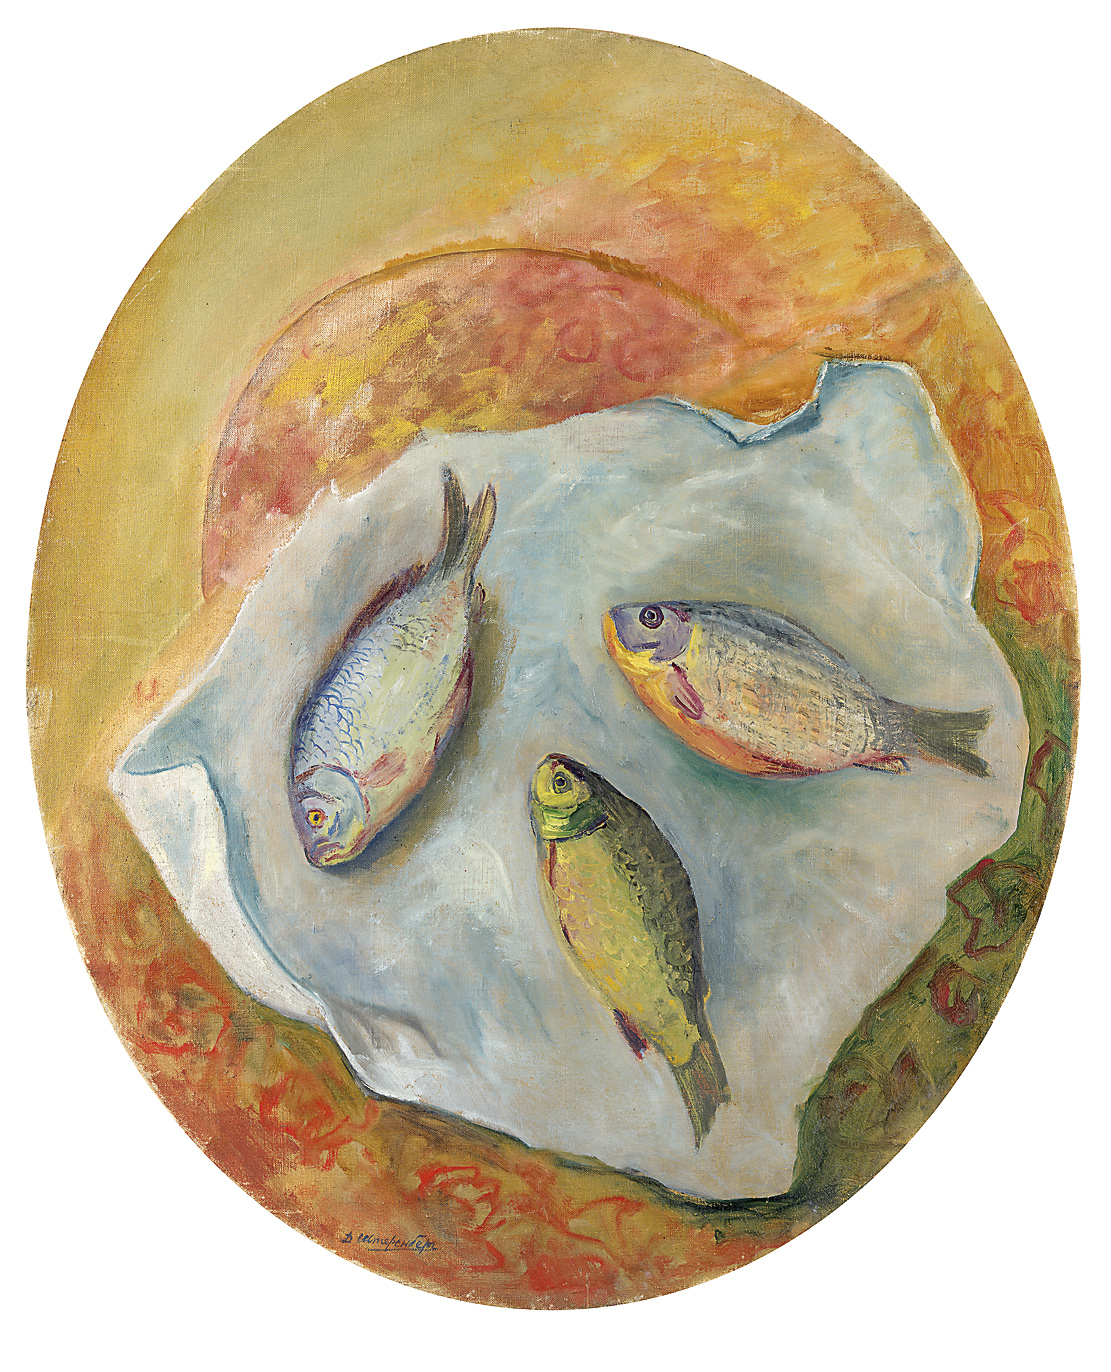 Lot 24 David Shterenberg, Still Life with Fish